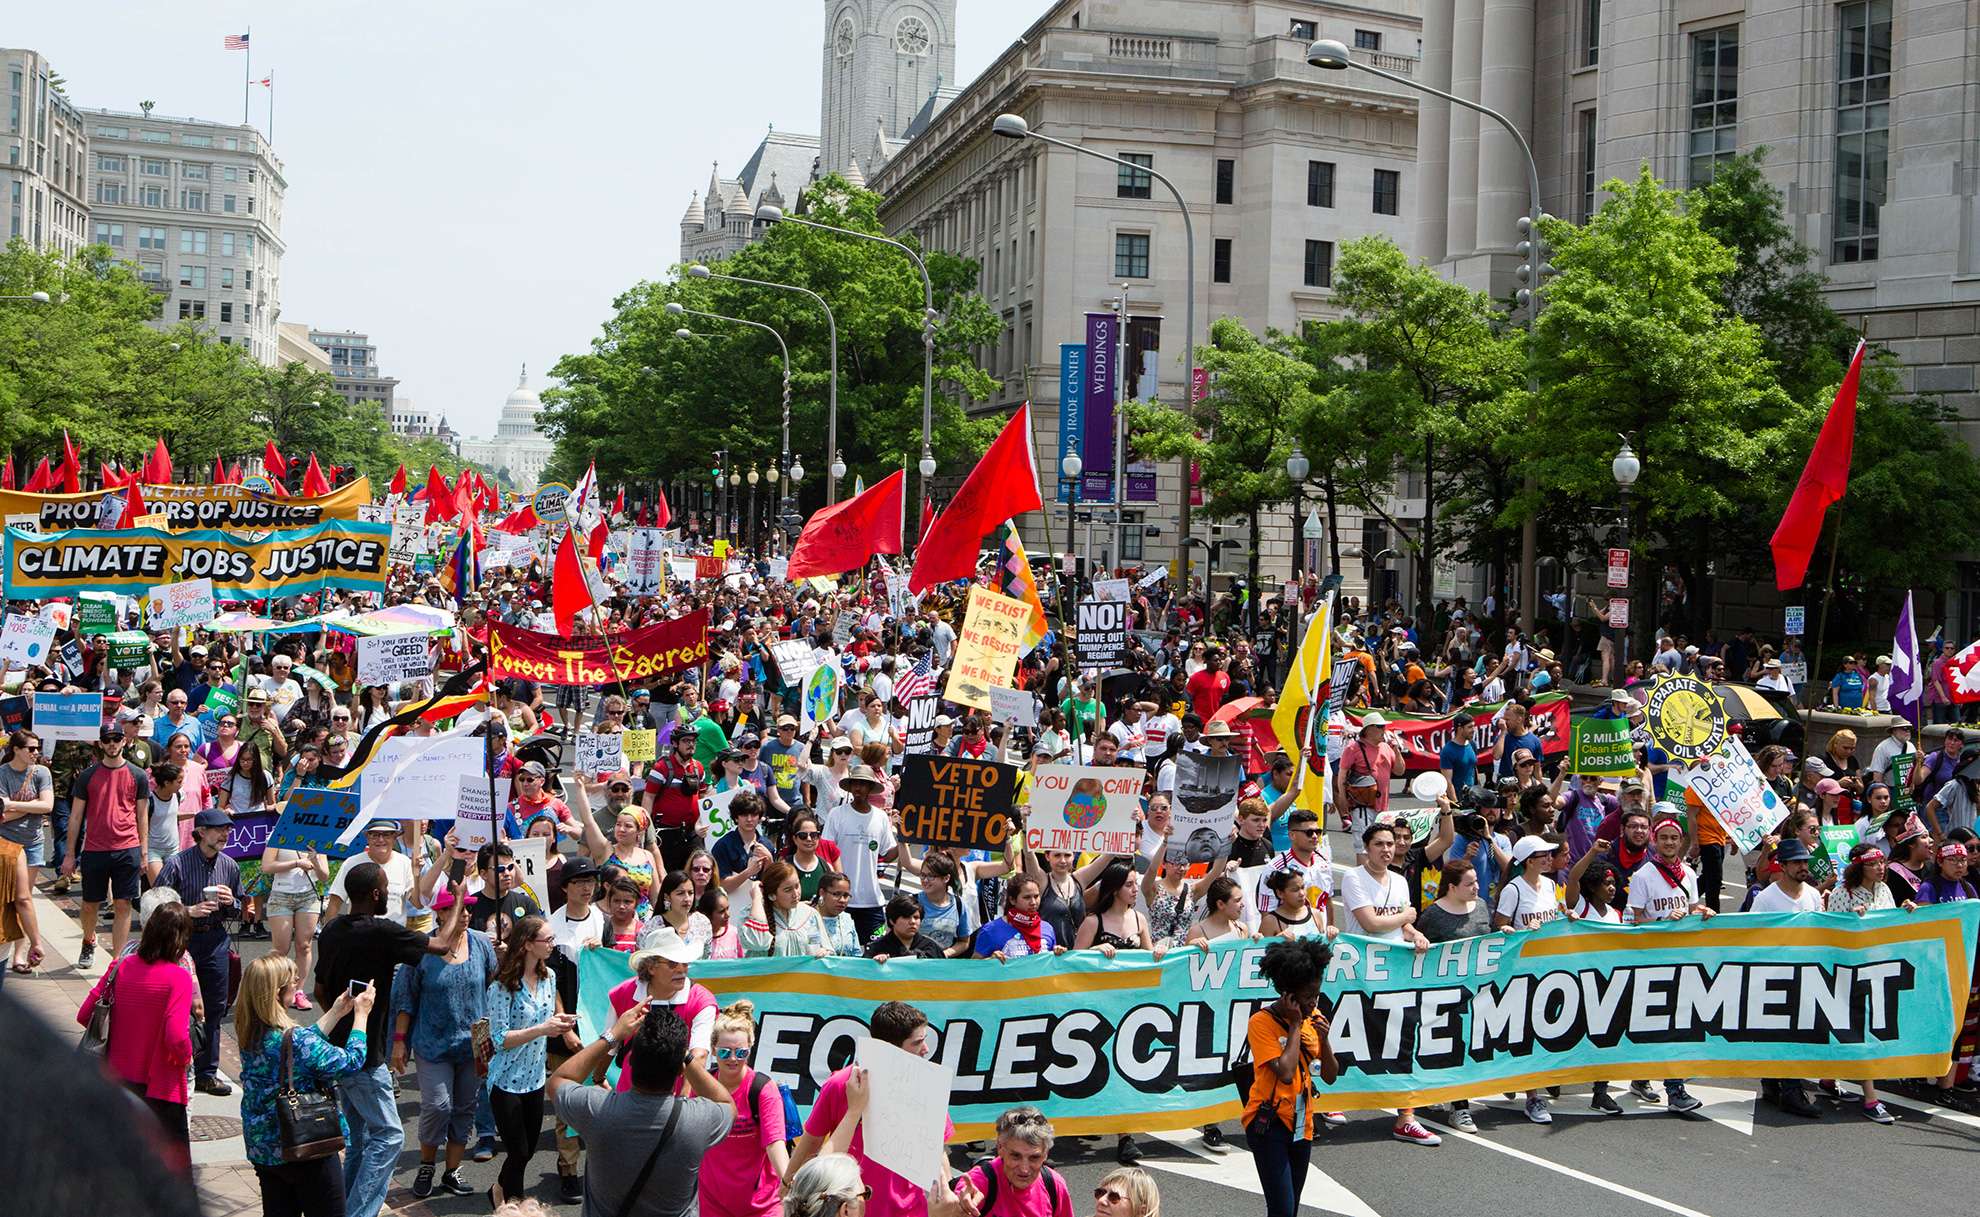 The Peoples Climate March in Washington, D.C., April 29, 2017. (Chris Jordan-Bloch / Earthjustice)